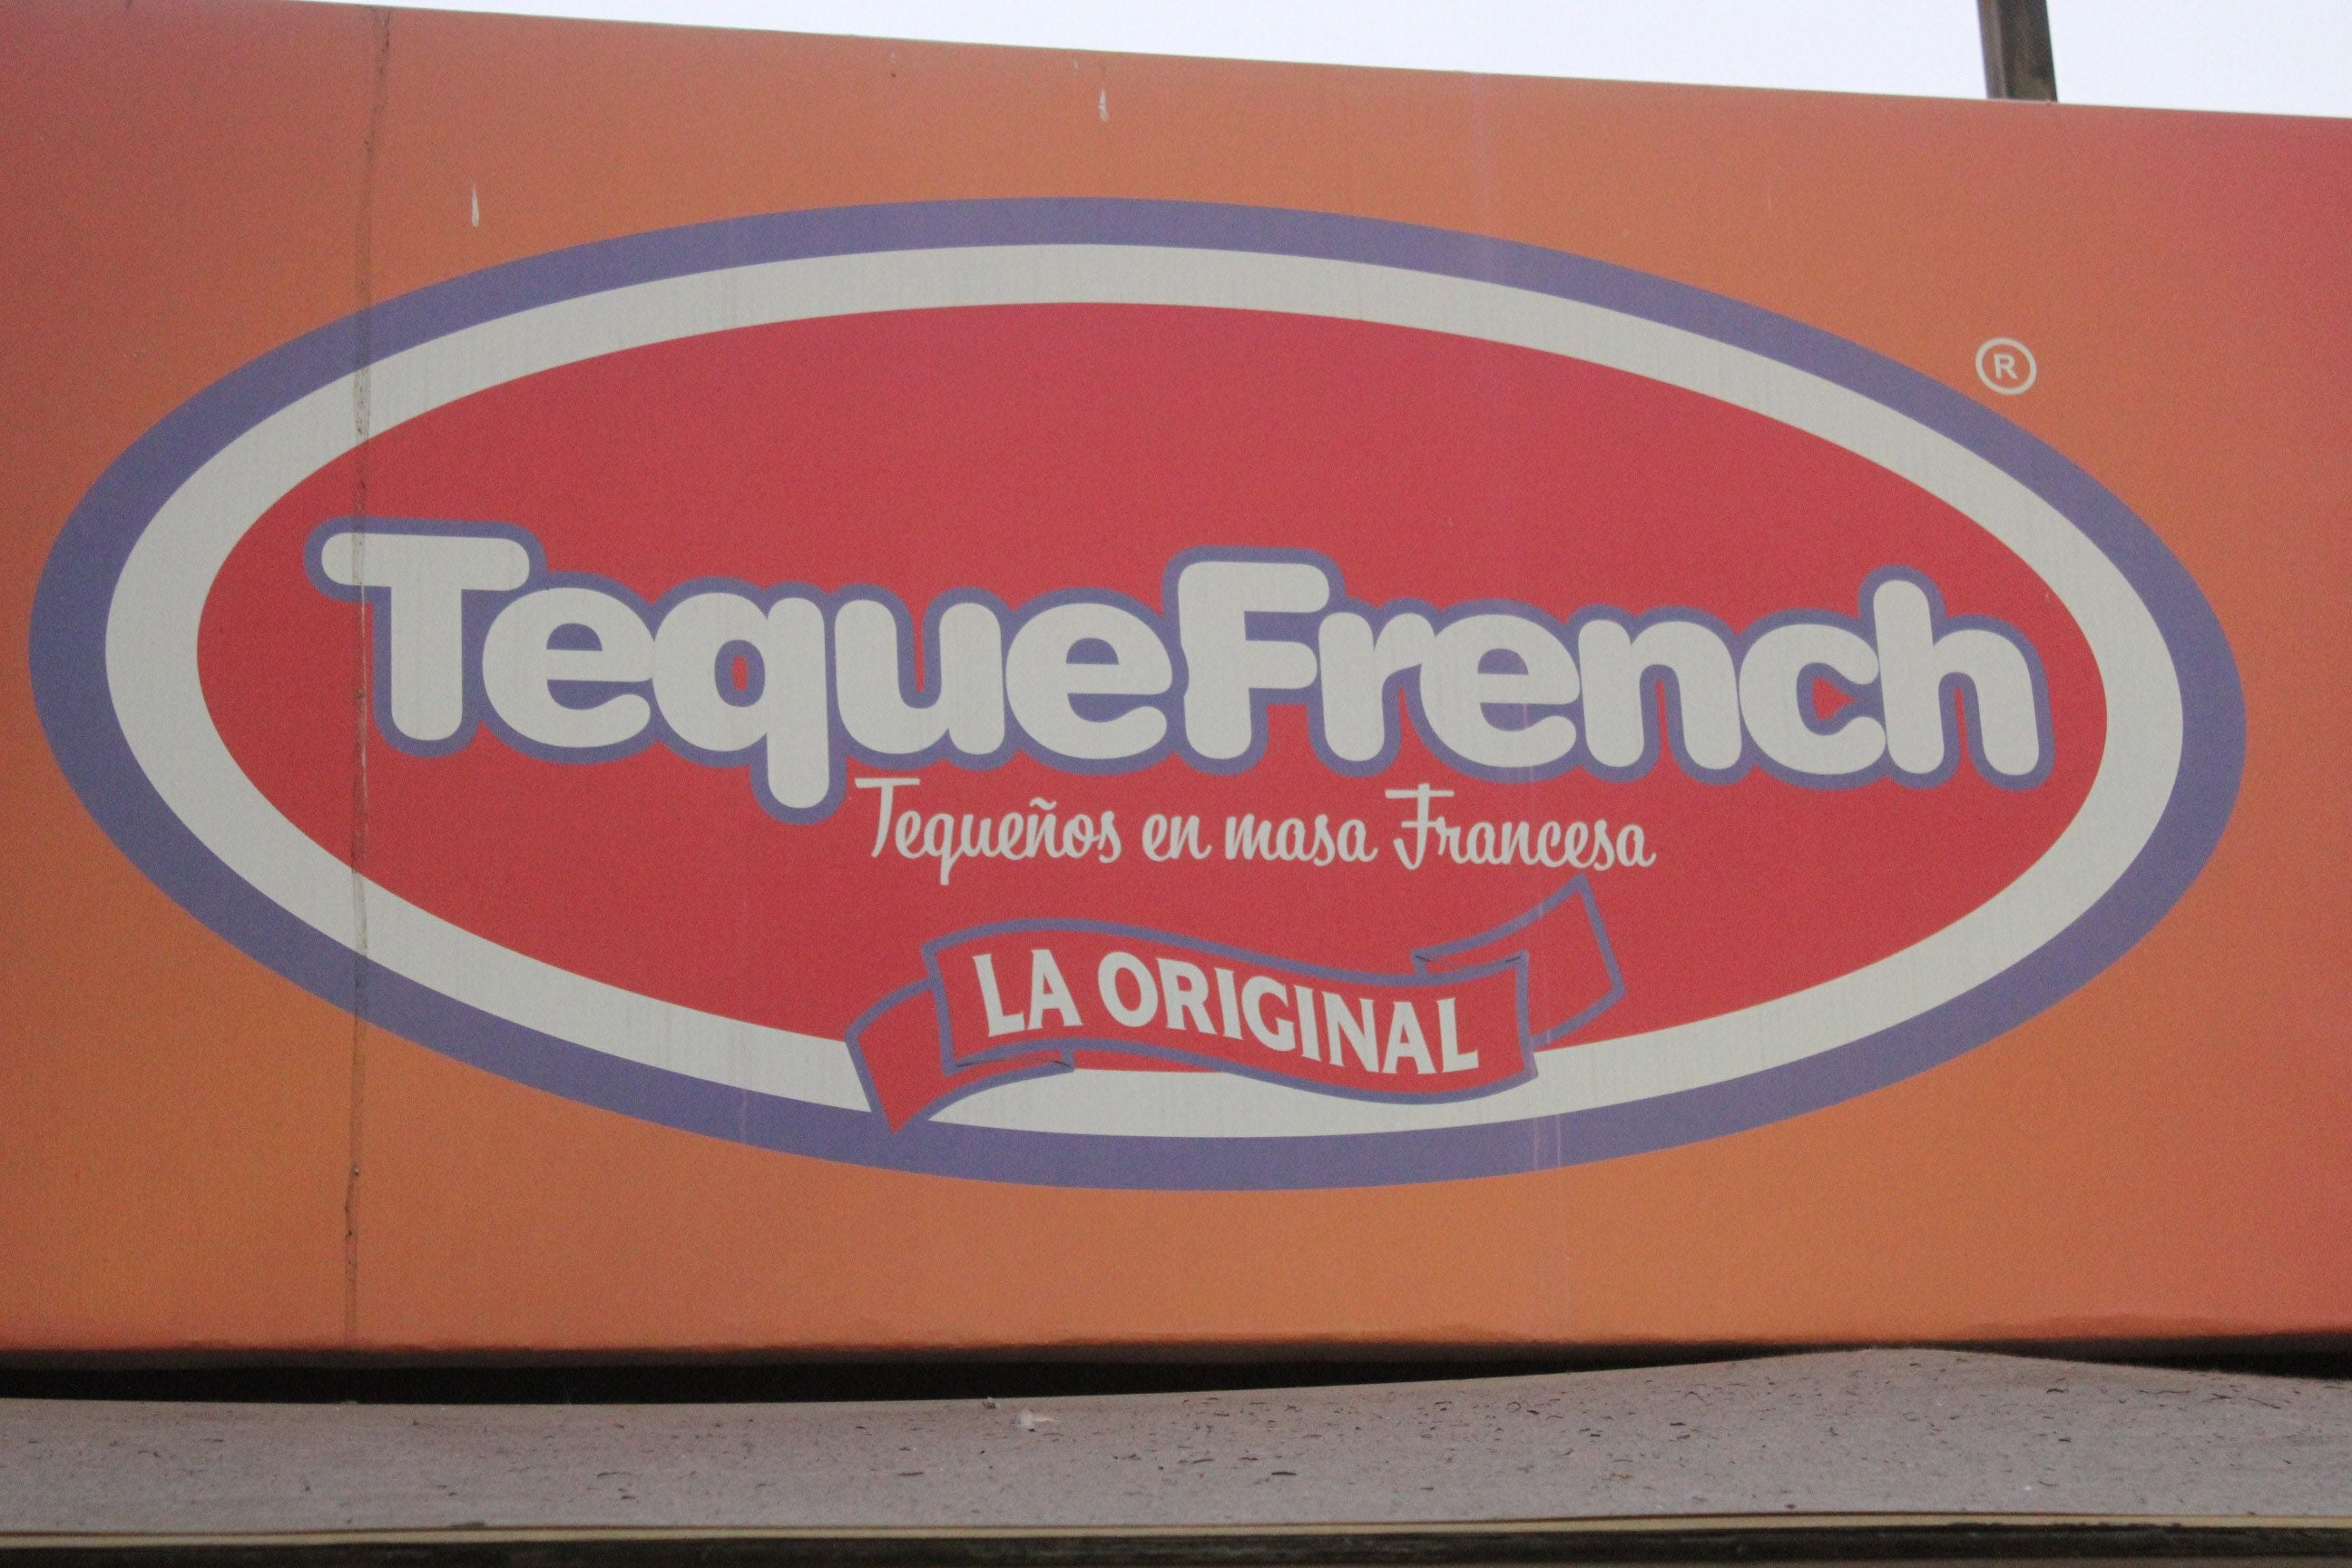 Signage in Tequefrench